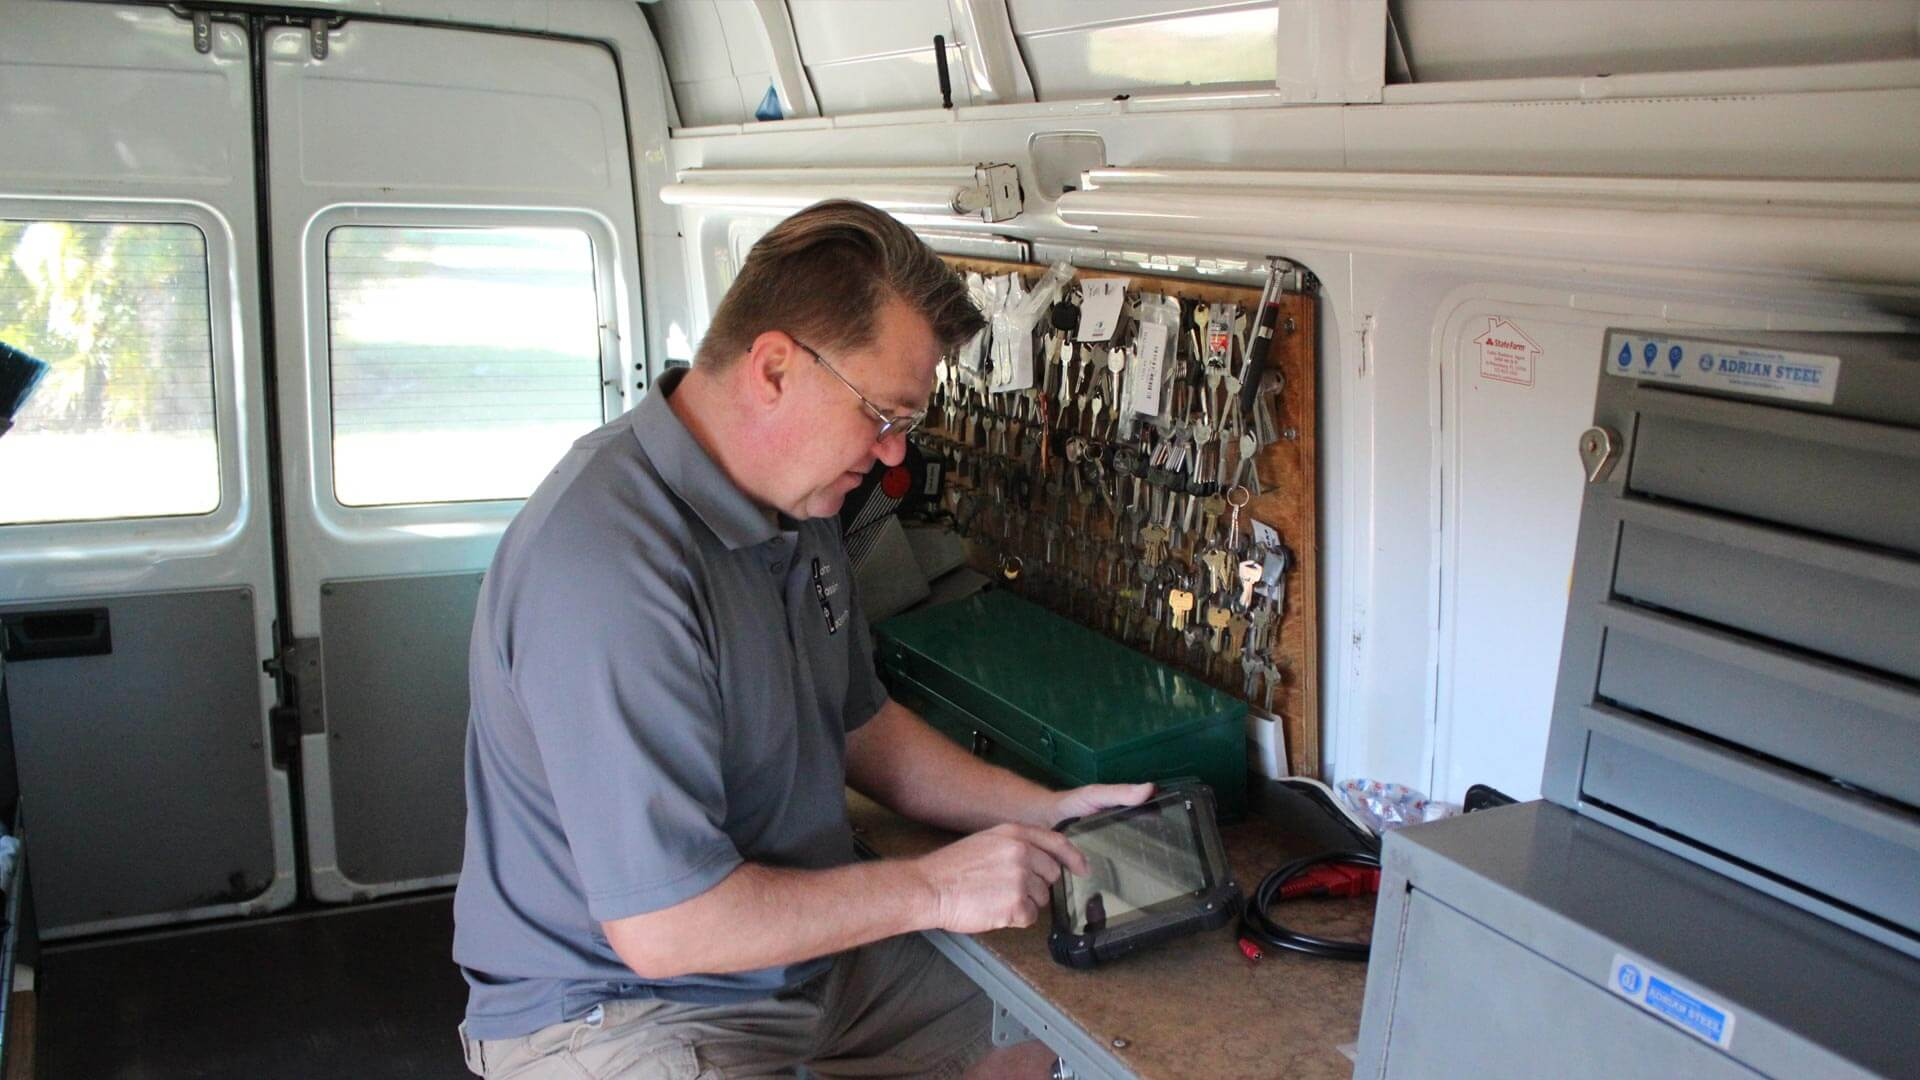 Local St. Petersburg, FL locksmith, John Rossin working in his mobile locksmith van.